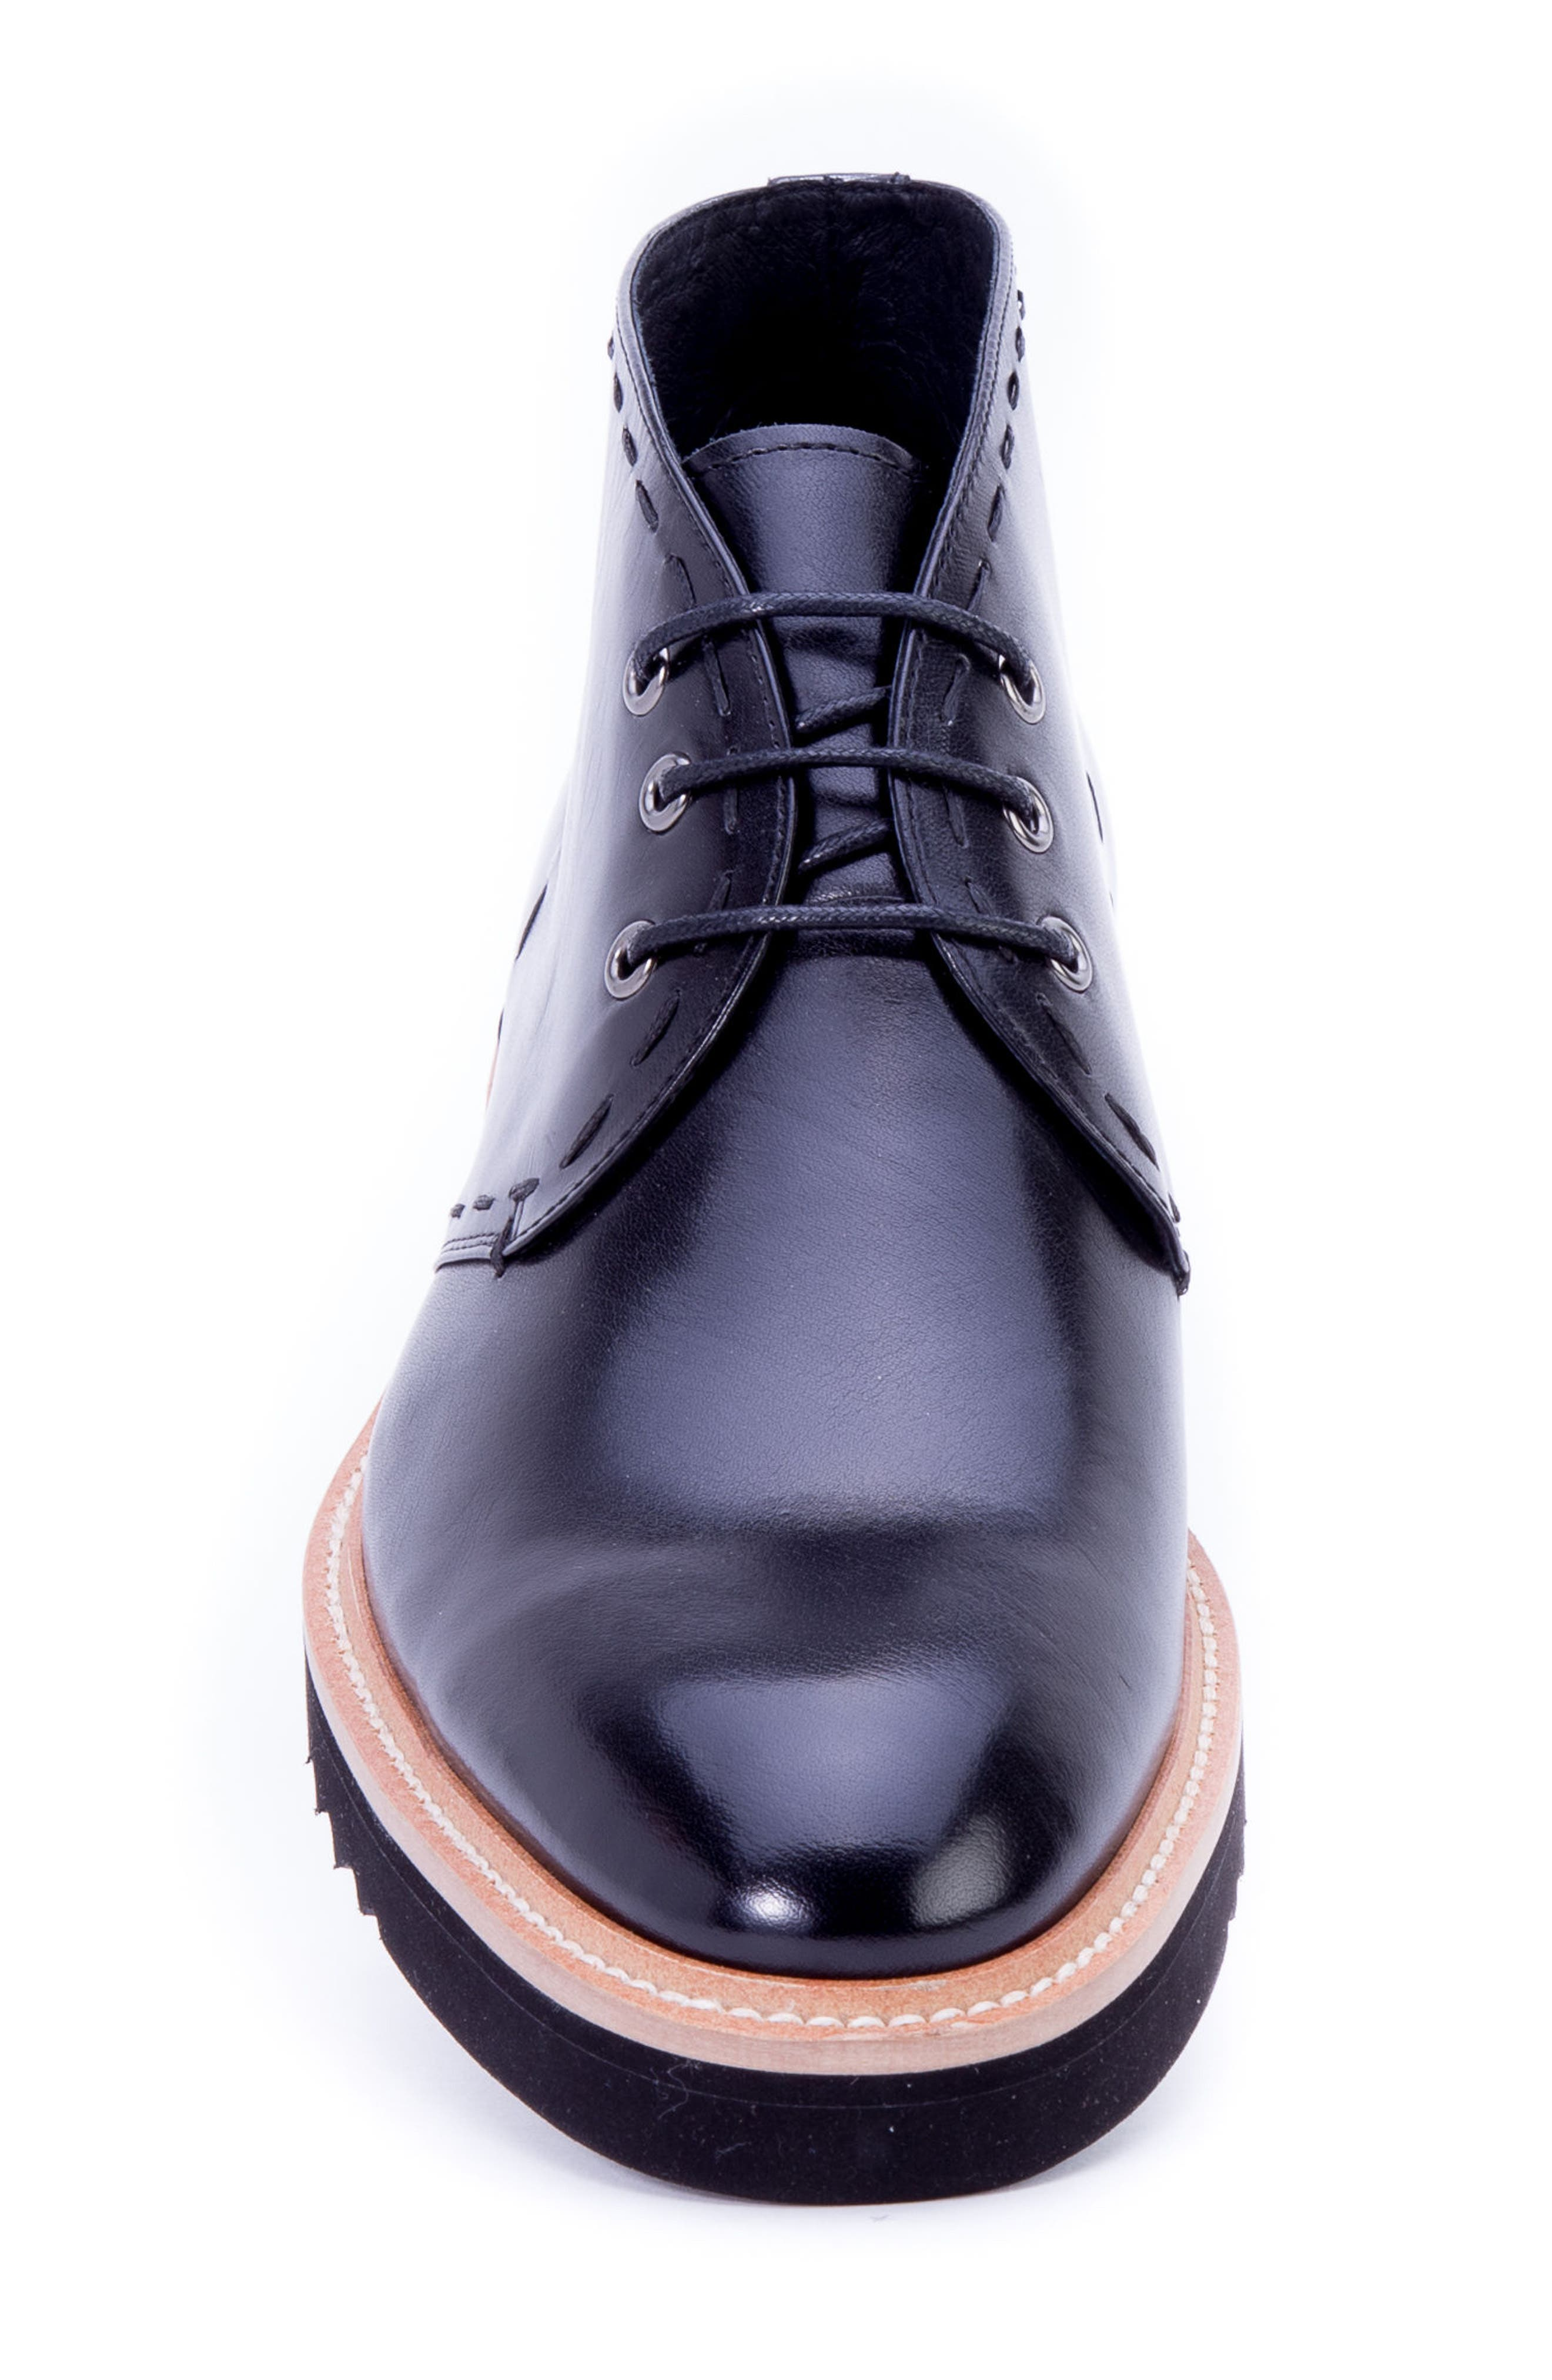 Lombardo Chukka Boot,                             Alternate thumbnail 4, color,                             Black Leather